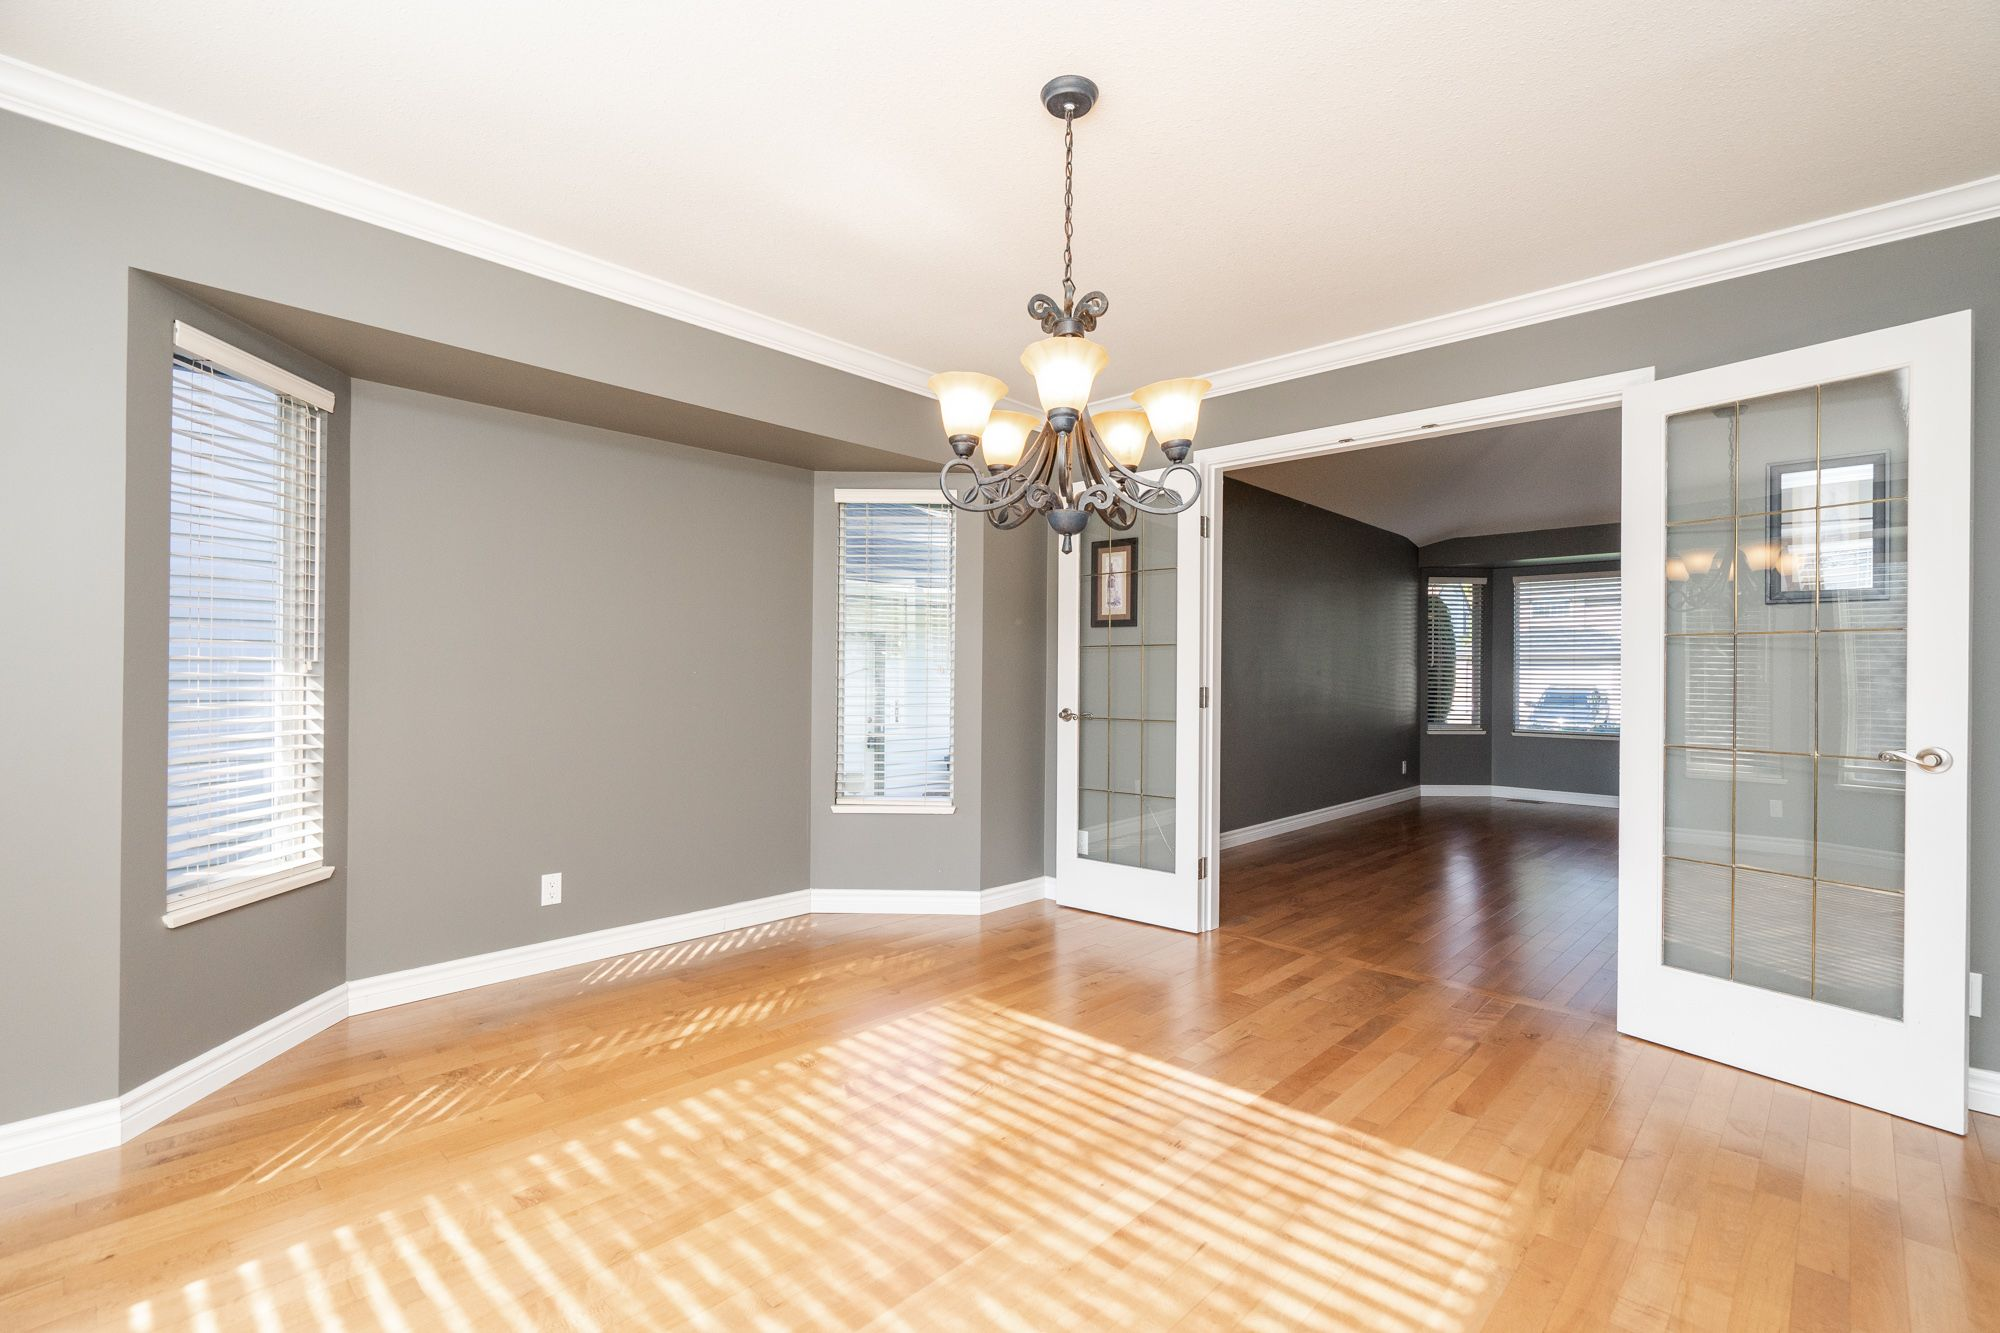 """Photo 13: Photos: 8448 213 Street in Langley: Walnut Grove House for sale in """"Forest Hills"""" : MLS®# R2259409"""